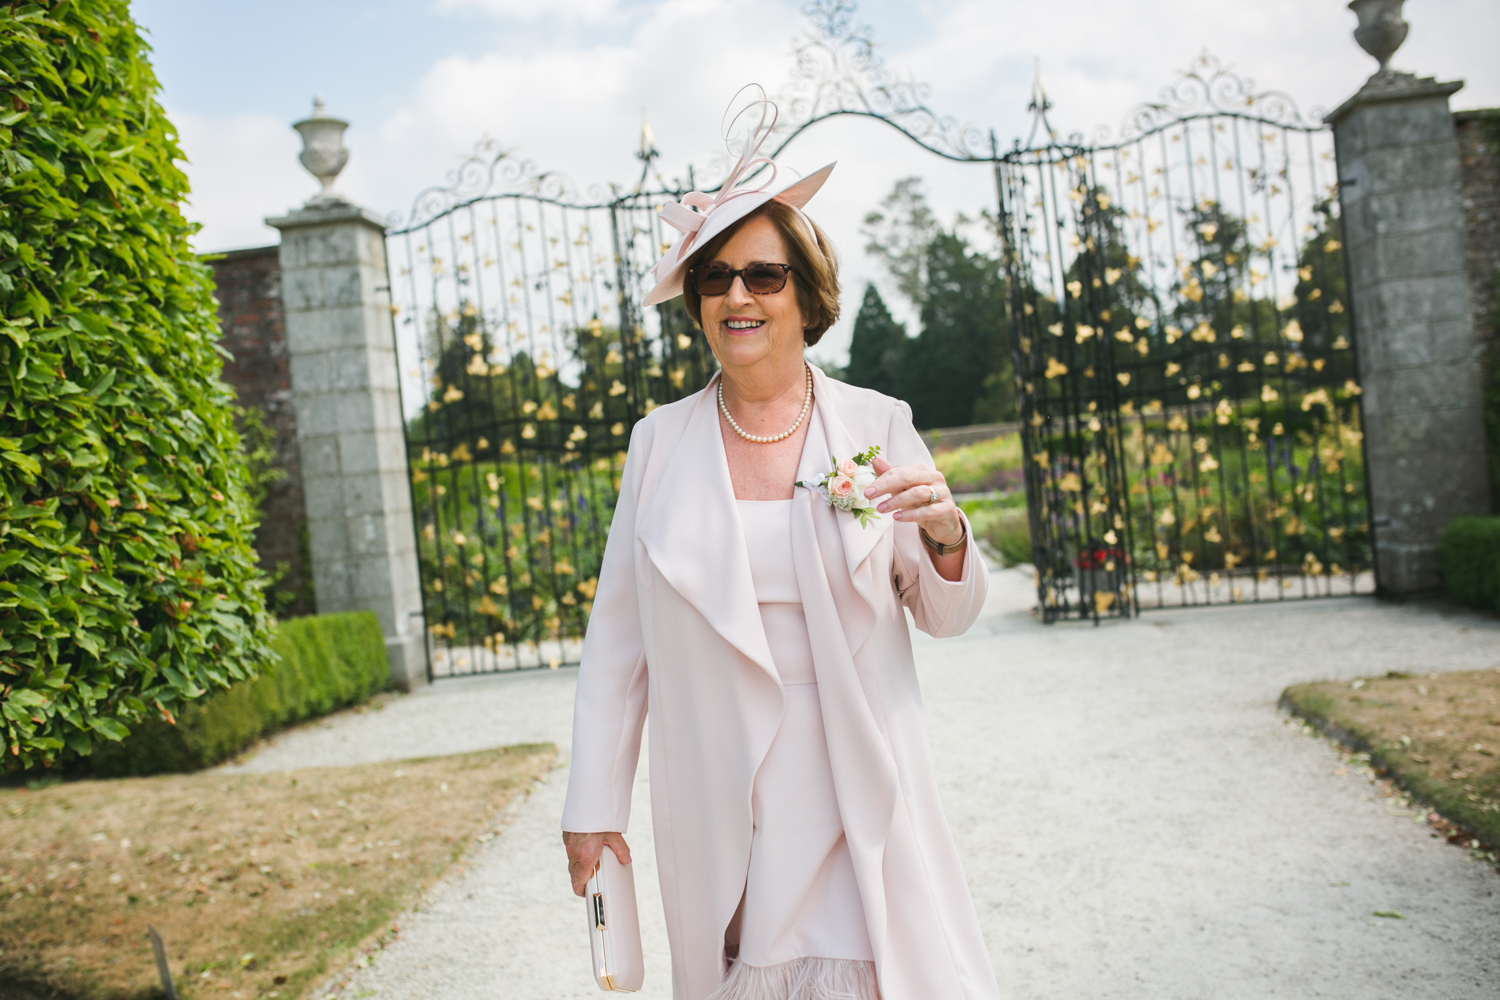 Powerscourt estate wedding-21.jpg